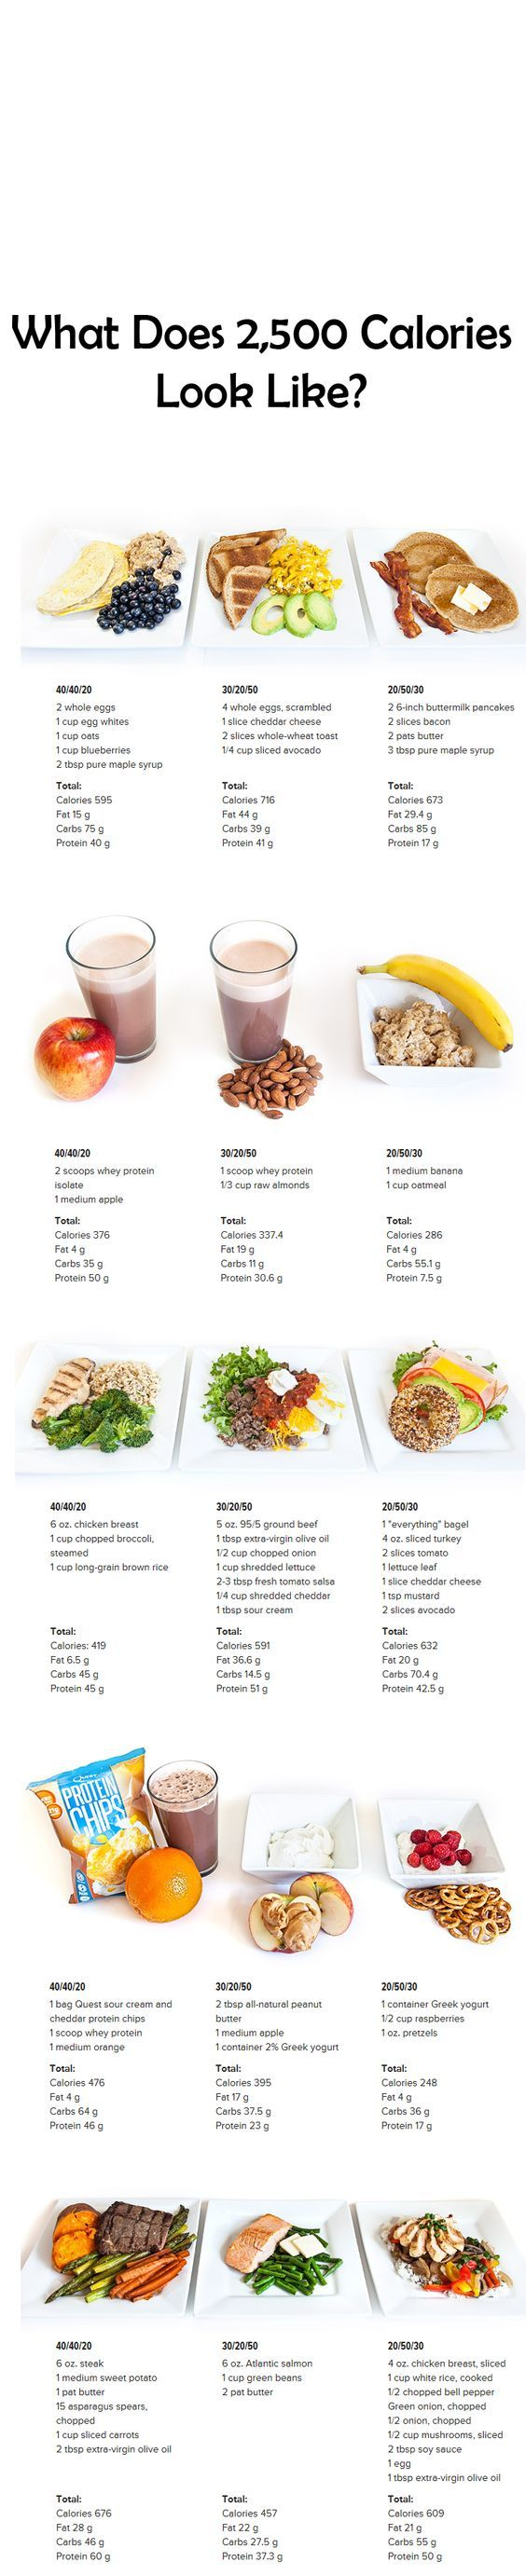 Ever wondered what 2,500 calories looks like? Use this handy ...